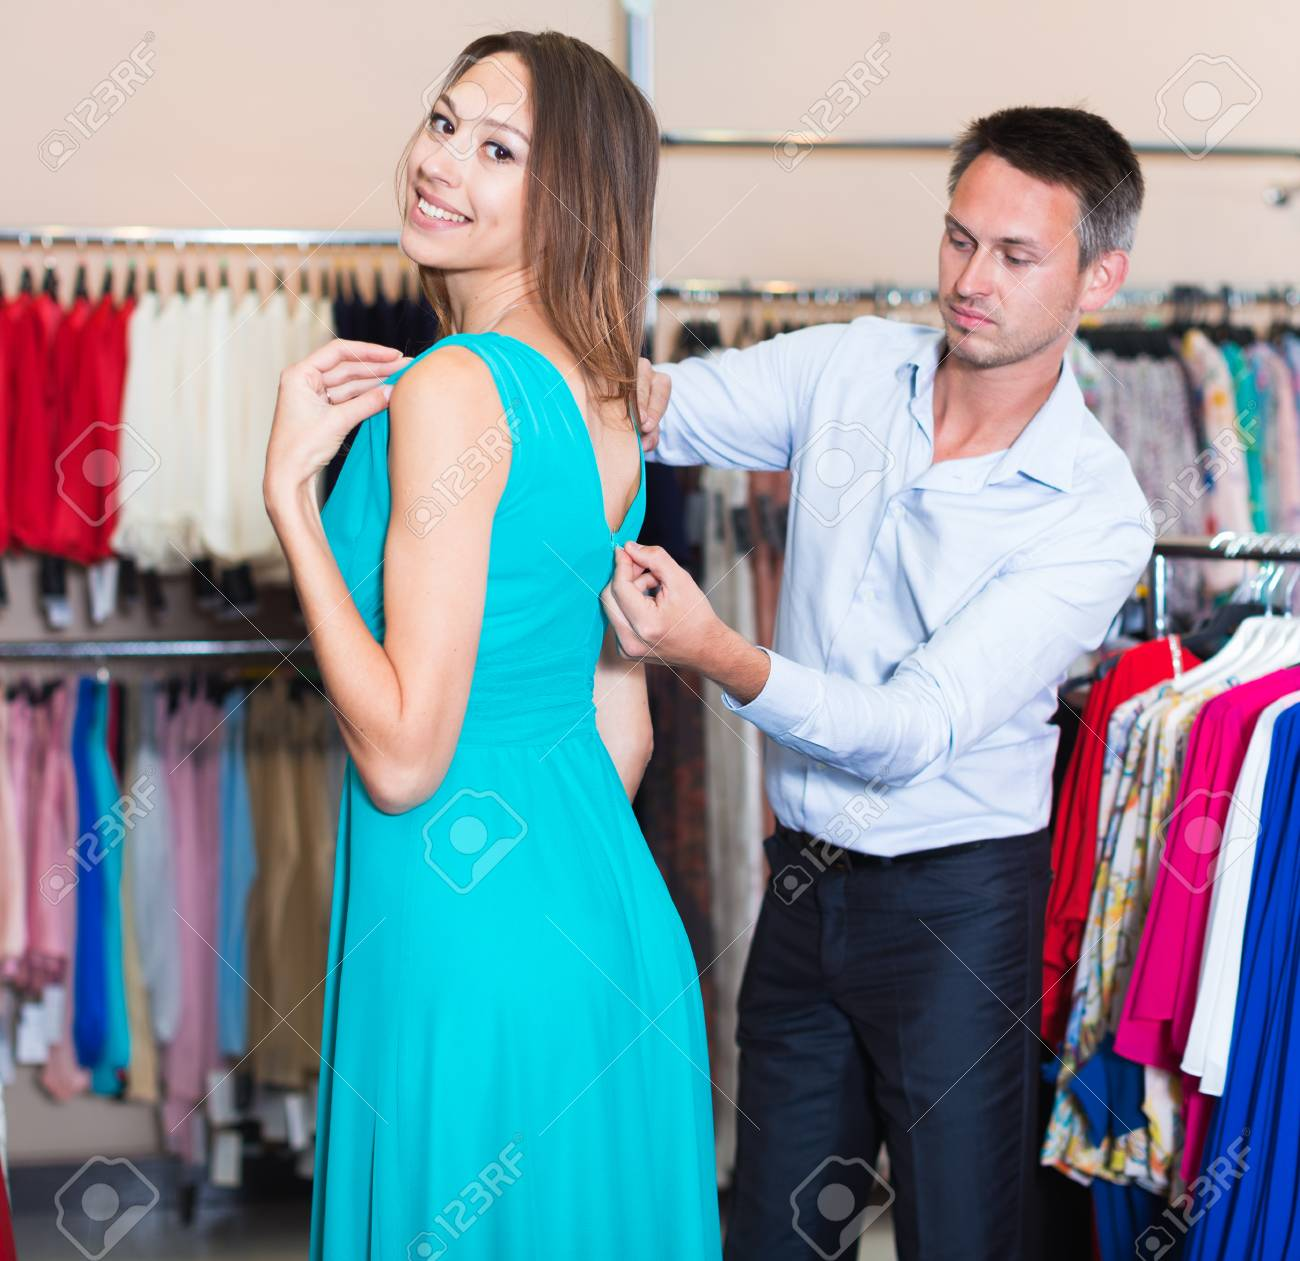 cf14f18e60 Portrait of family couple choosing new dress in women clothes shop Stock  Photo - 113845766